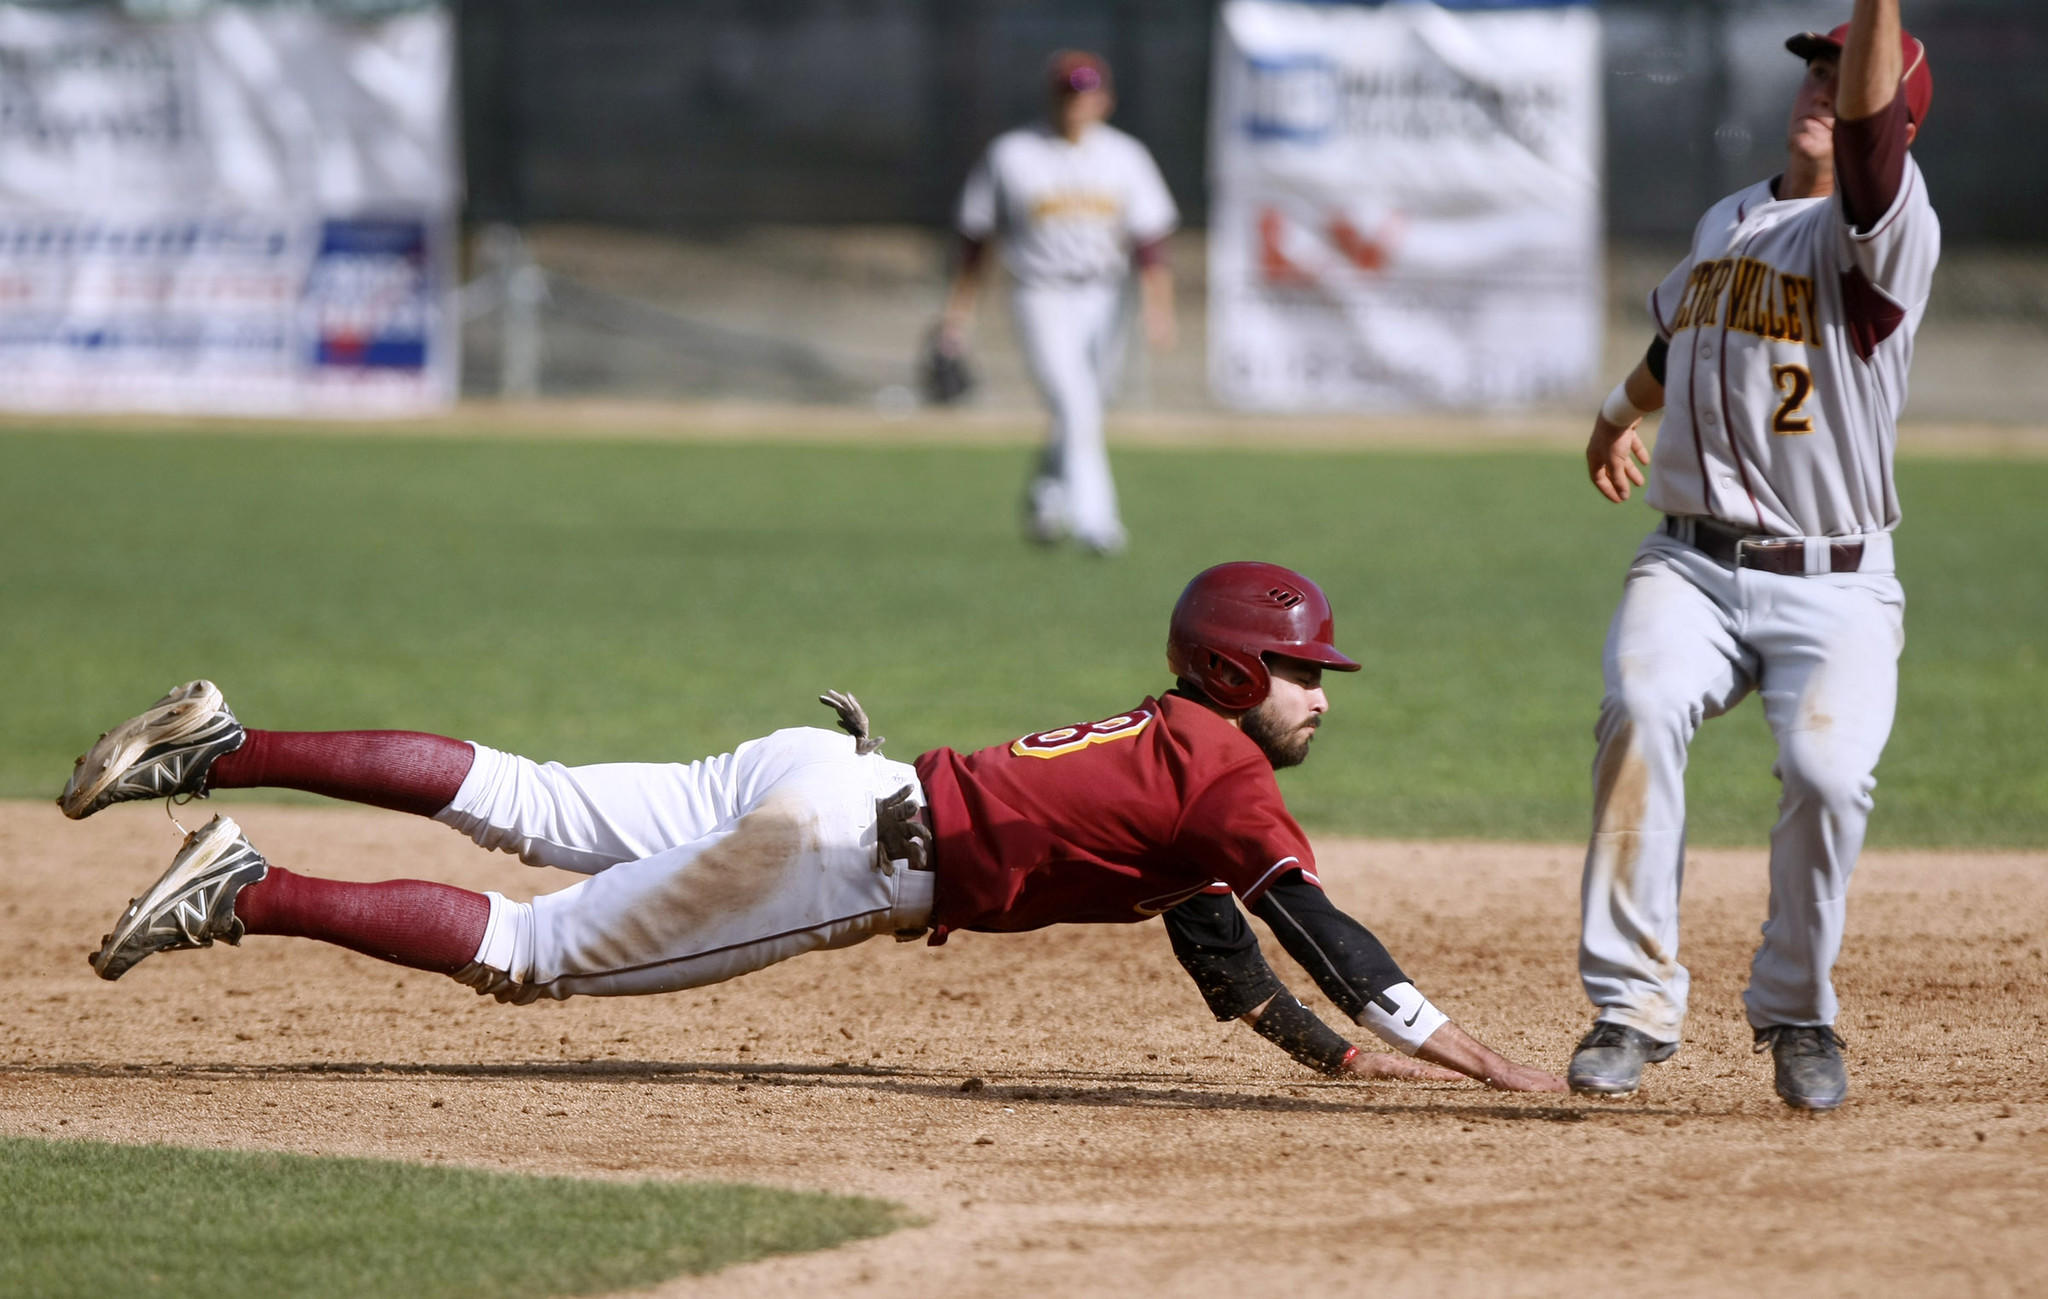 Glendale College baseball's #8 Nick Padilla gets back to second base on an attempted pick during home game vs. Victor Valley College at Stengel Field in Glendale on Saturday, Feb. 8, 2014.